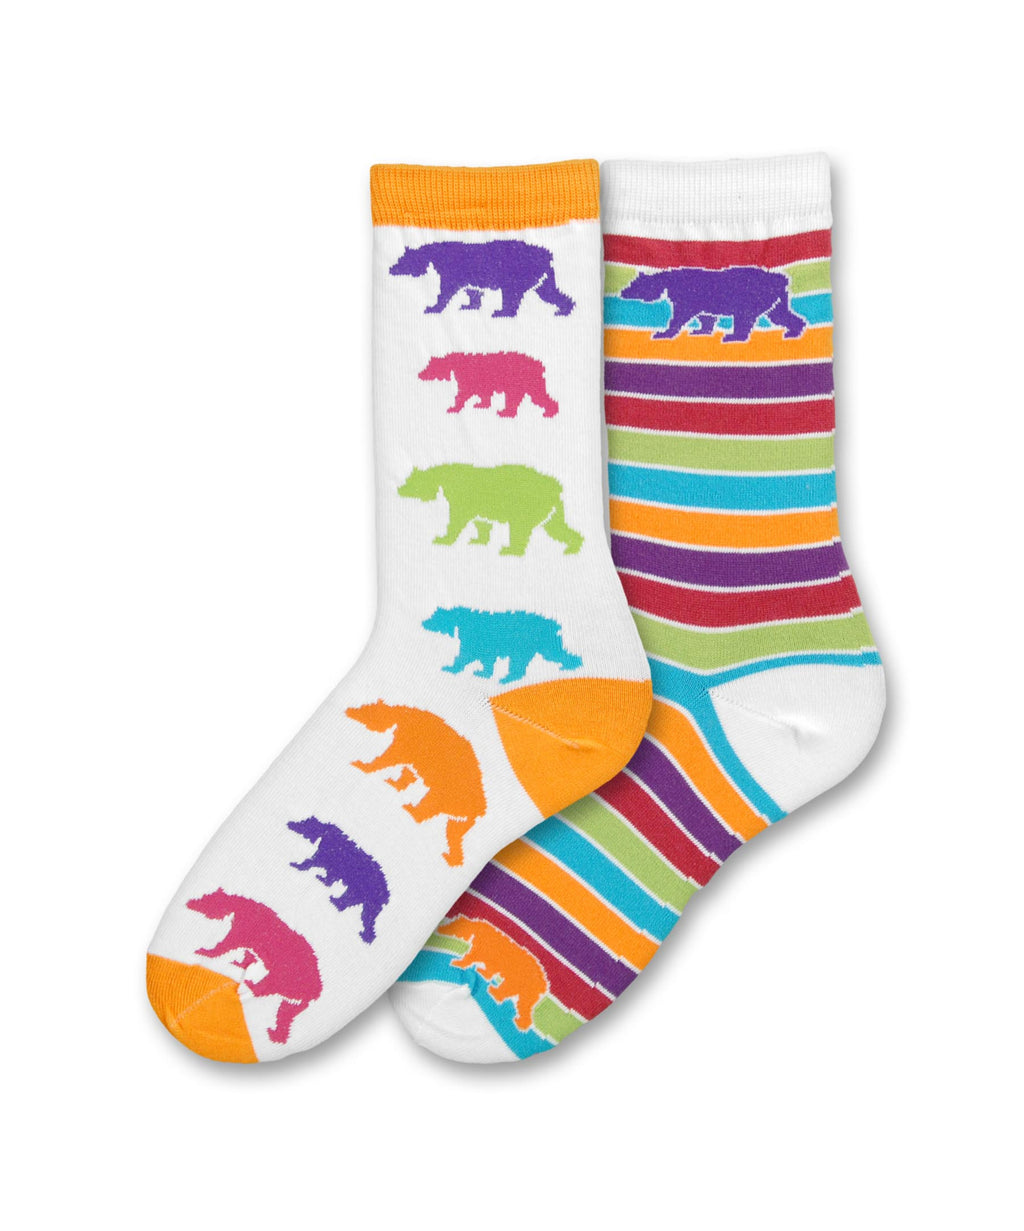 FBF Bear Mismatched Sock starts with a White background and Bright Orange Cuff, Heel and Toe with Colorful Bears going down. The next sock has White Cuff, Heel and Toe with a Purple Bear at the top and rows of bright colors going horizontal down the sock.